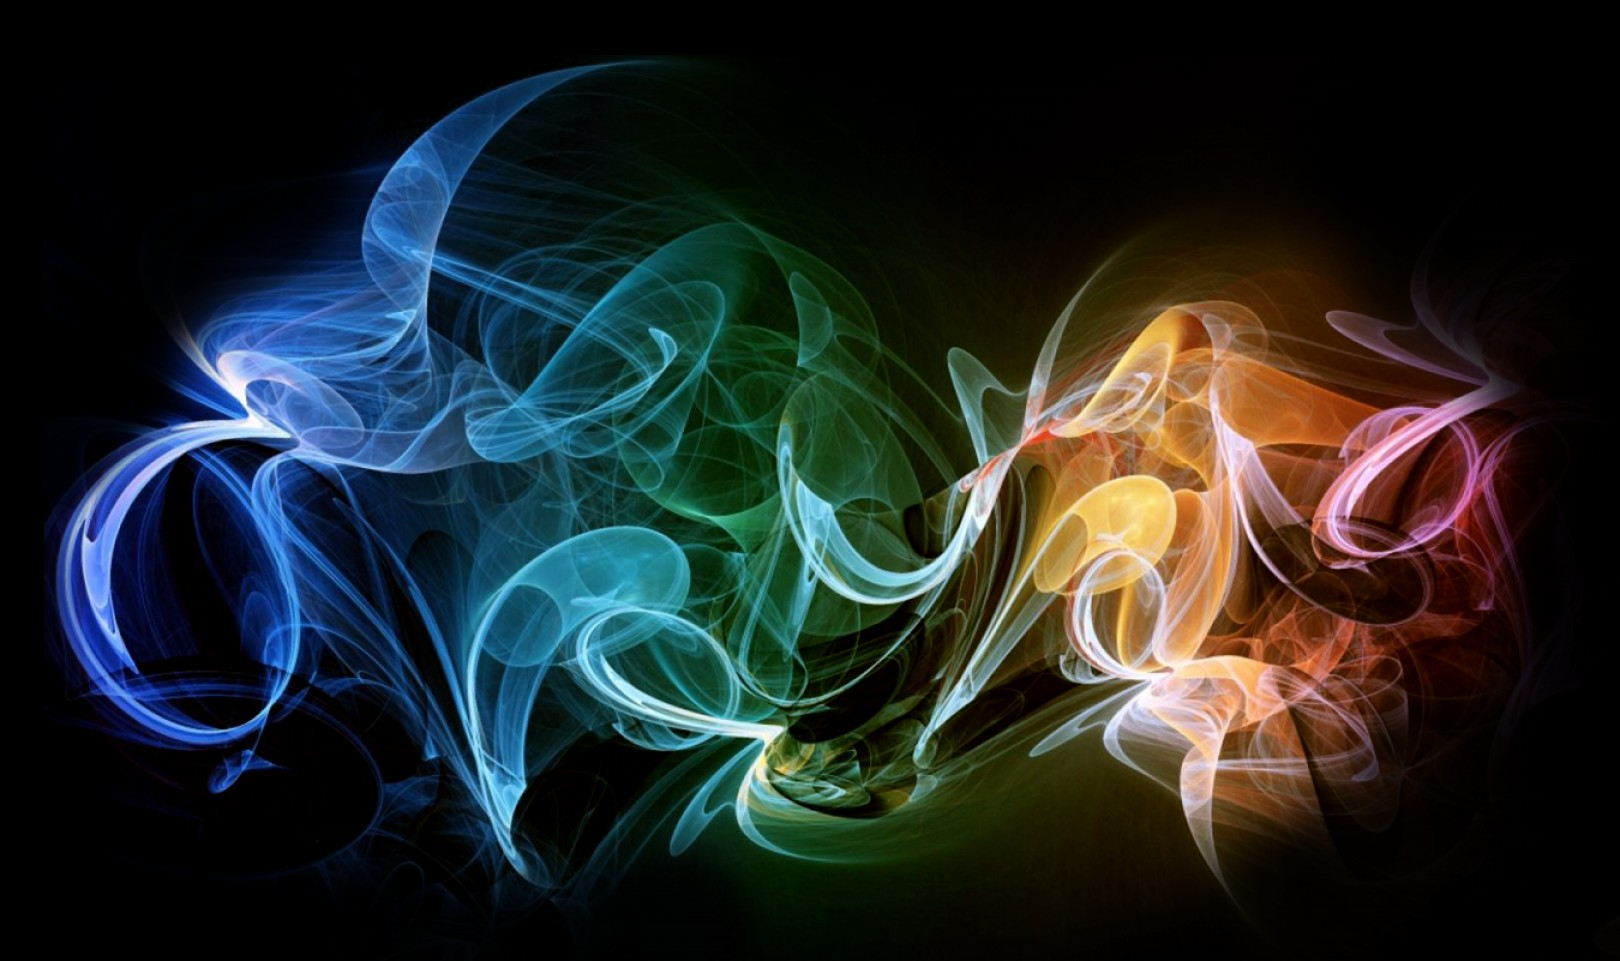 Color Smoke Vector: Color Smoke Png Transparent Image